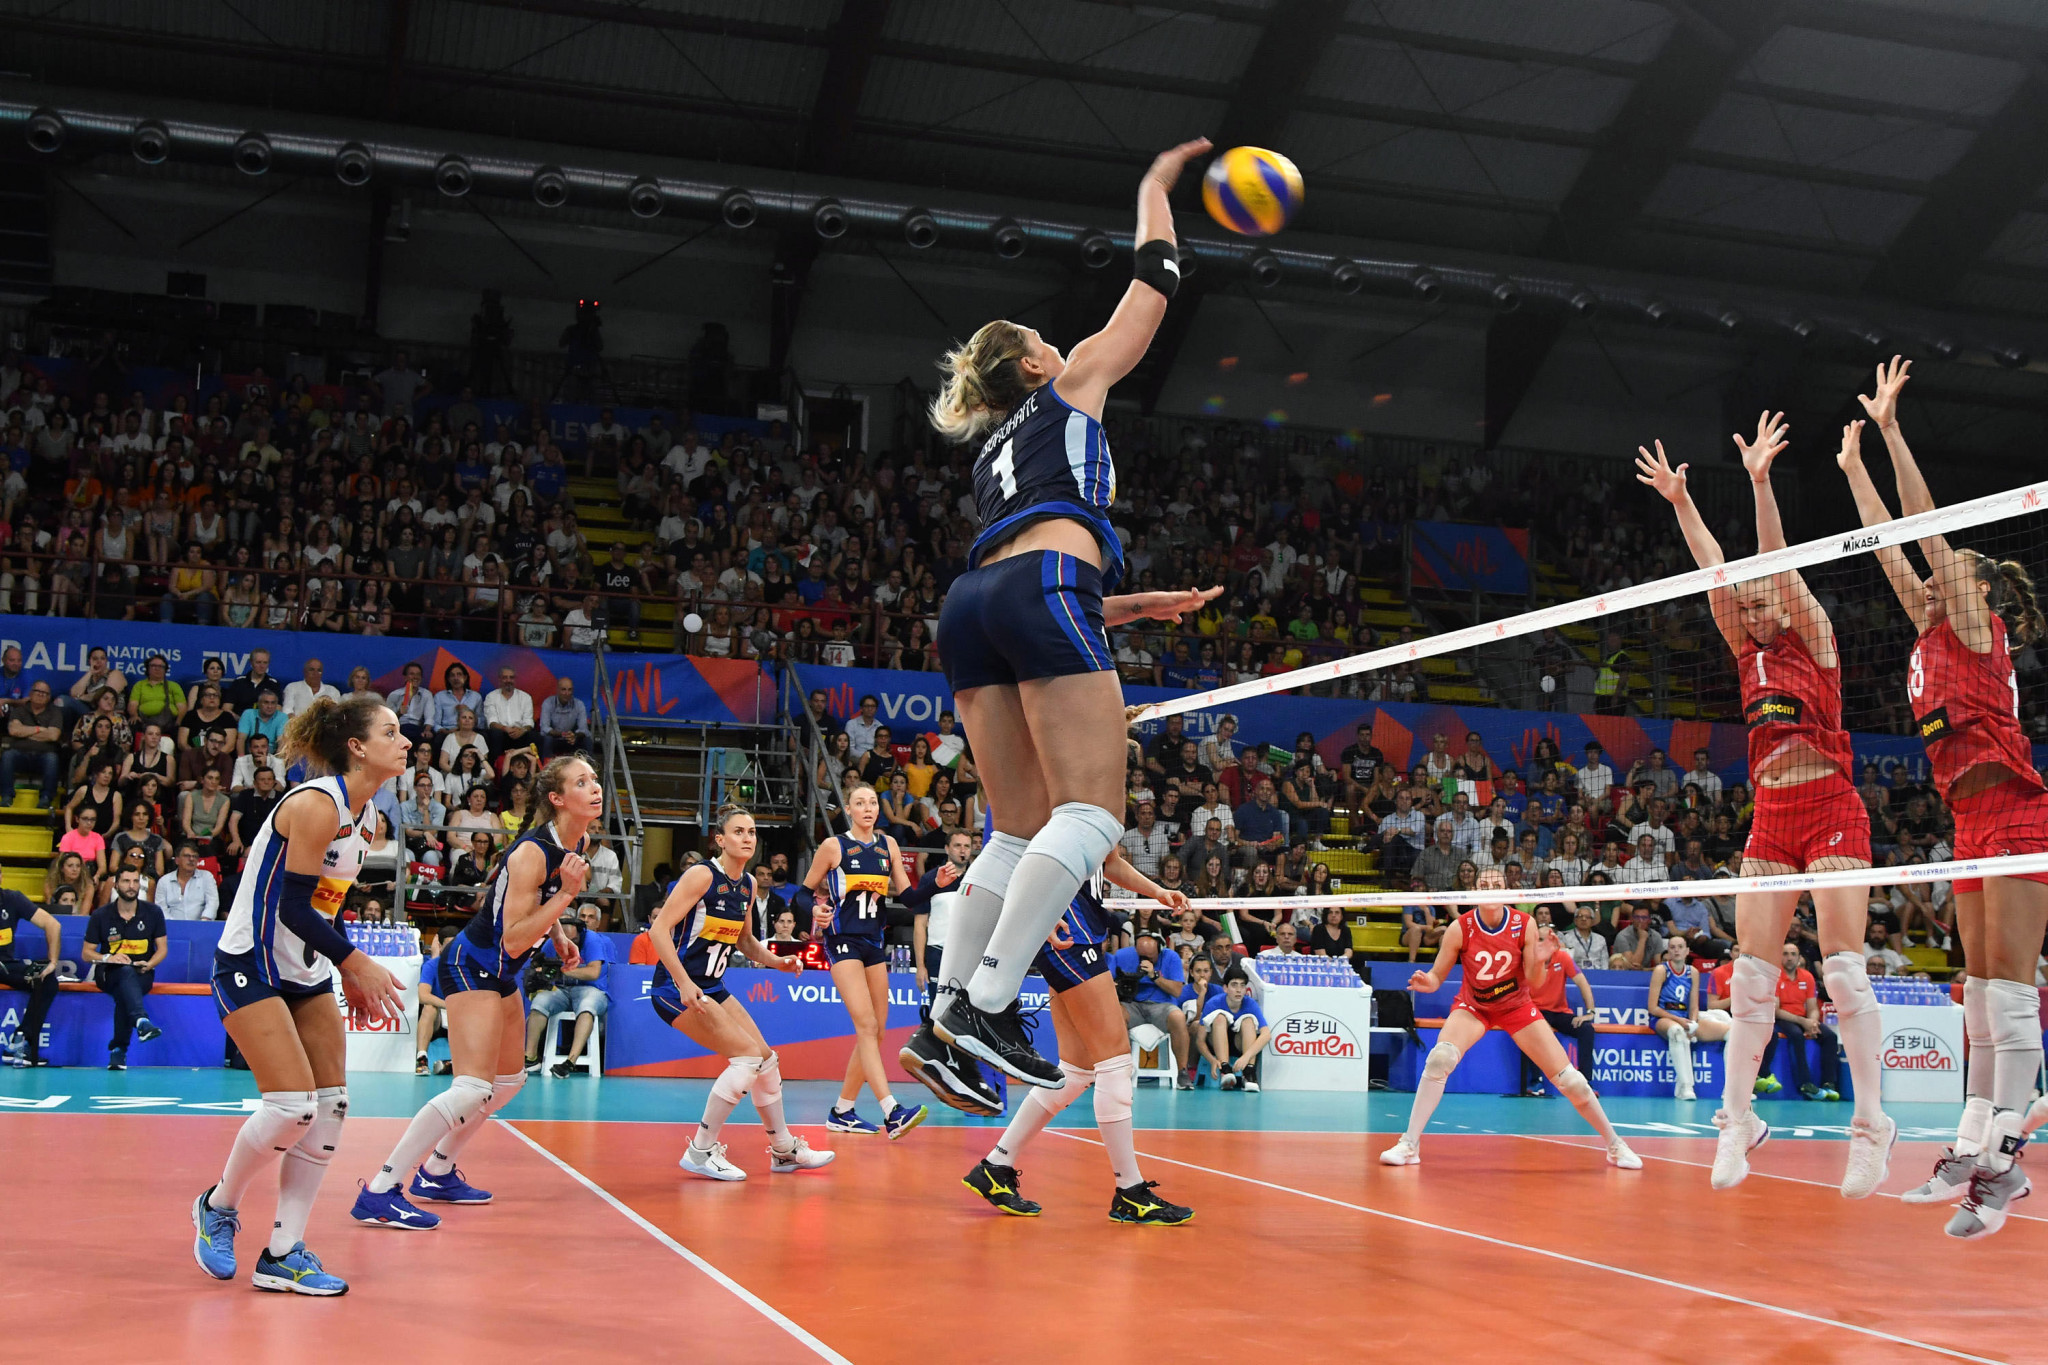 FIVB launches Volleyball World $300 million partnership to boost global growth